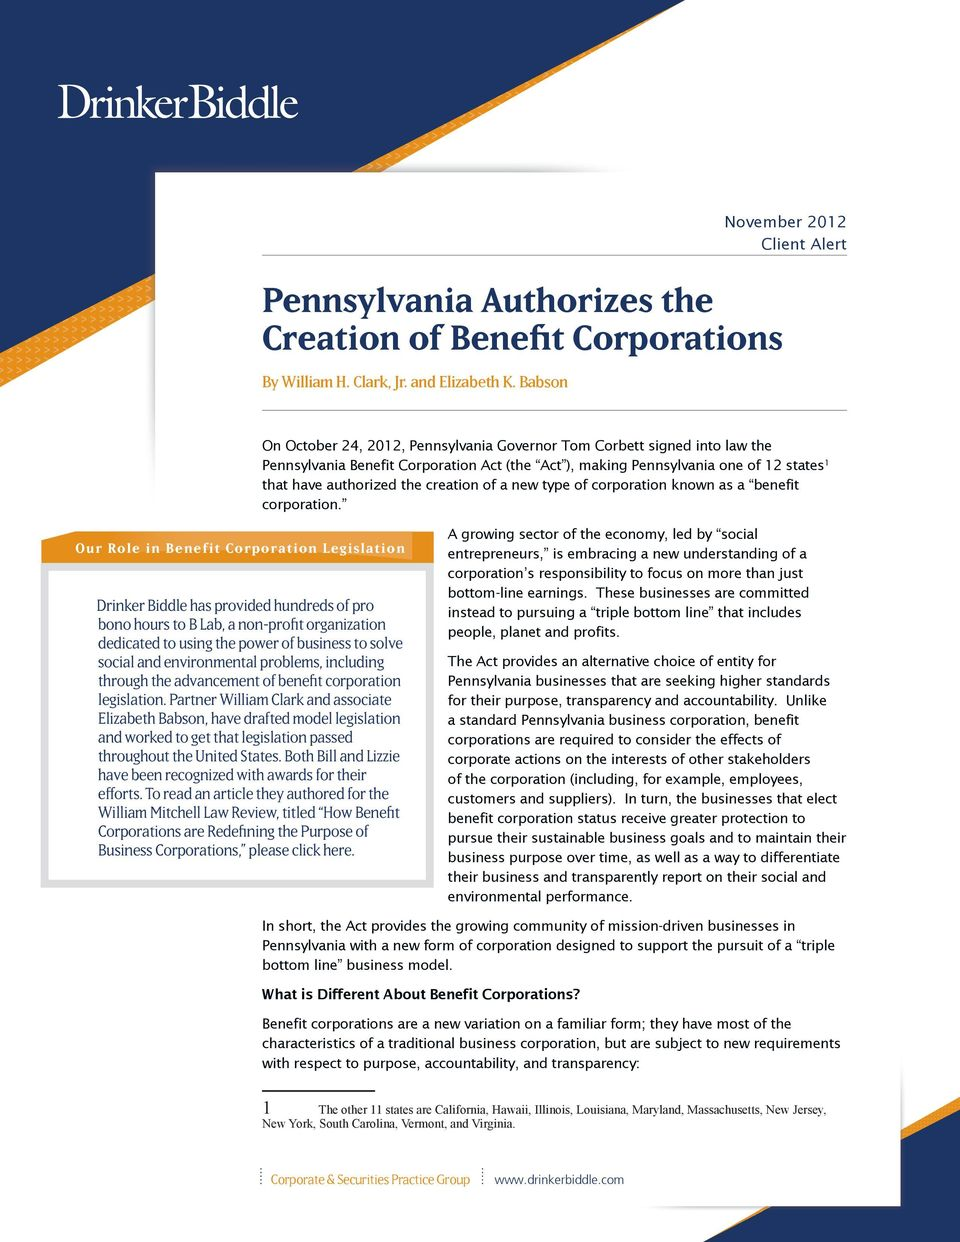 that have authorized the creation of a new type of corporation known as a benefit corporation.